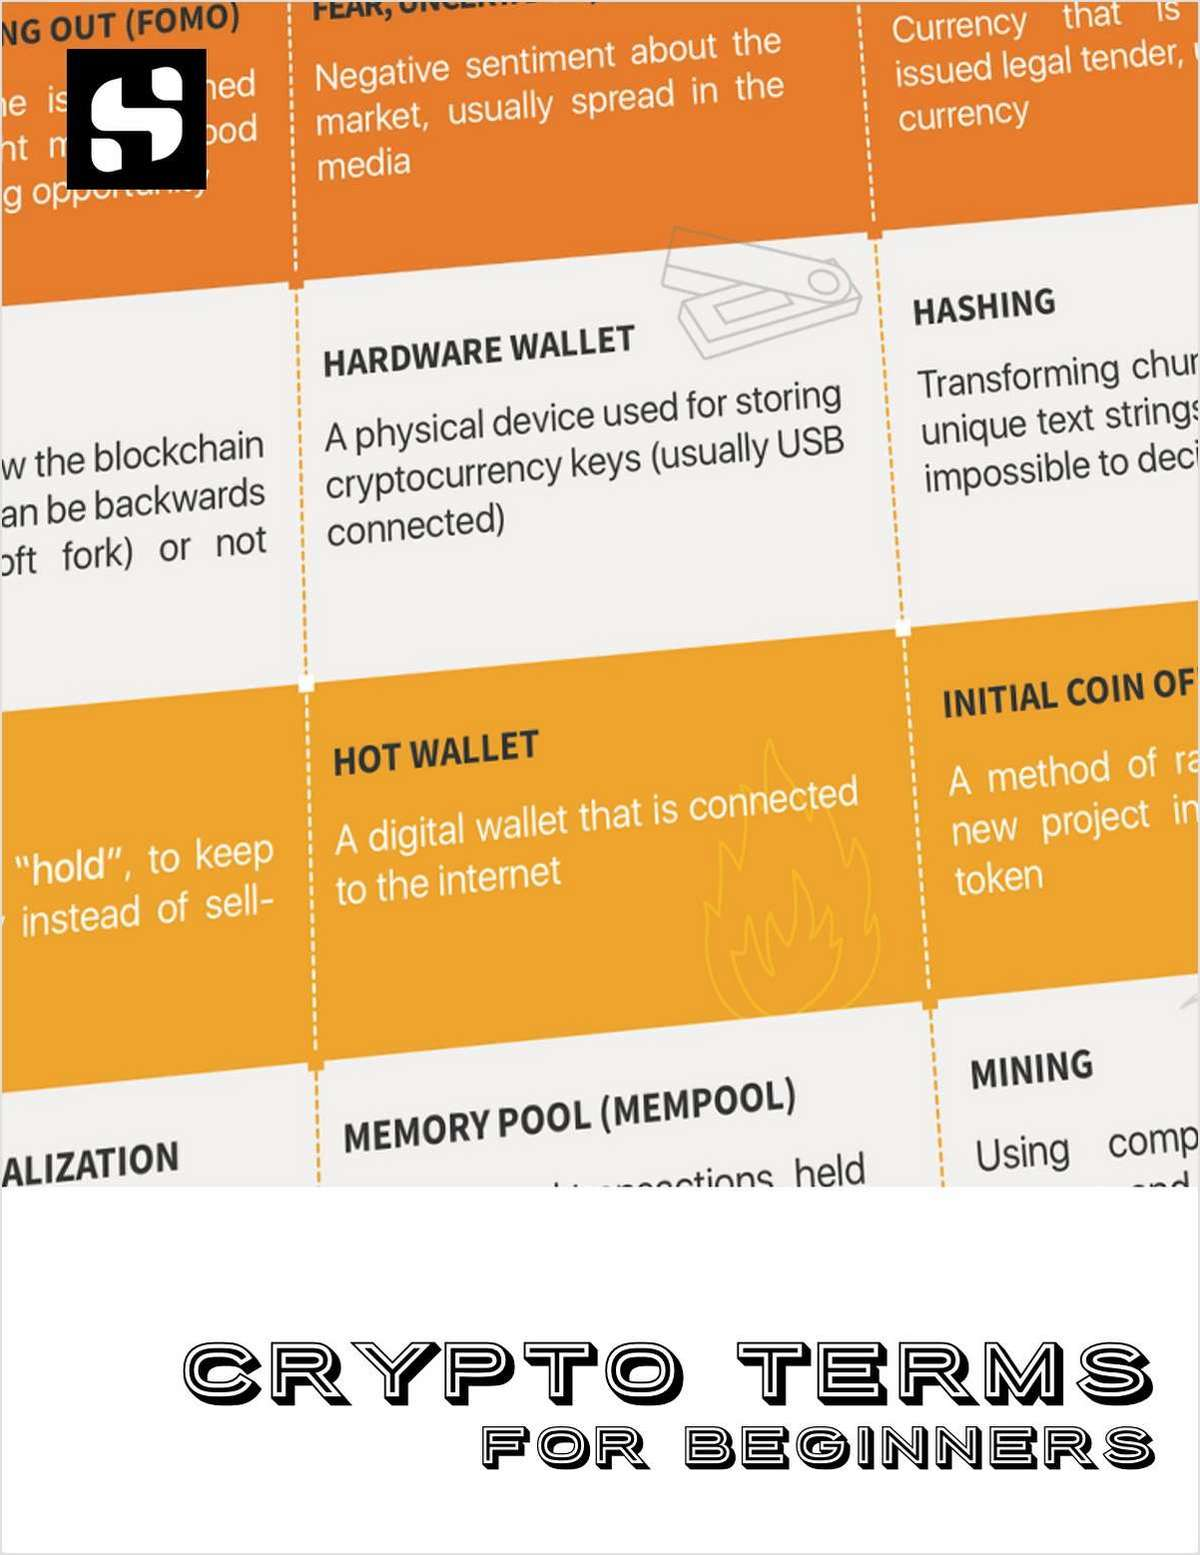 50 Crypto Terms You Need To Know